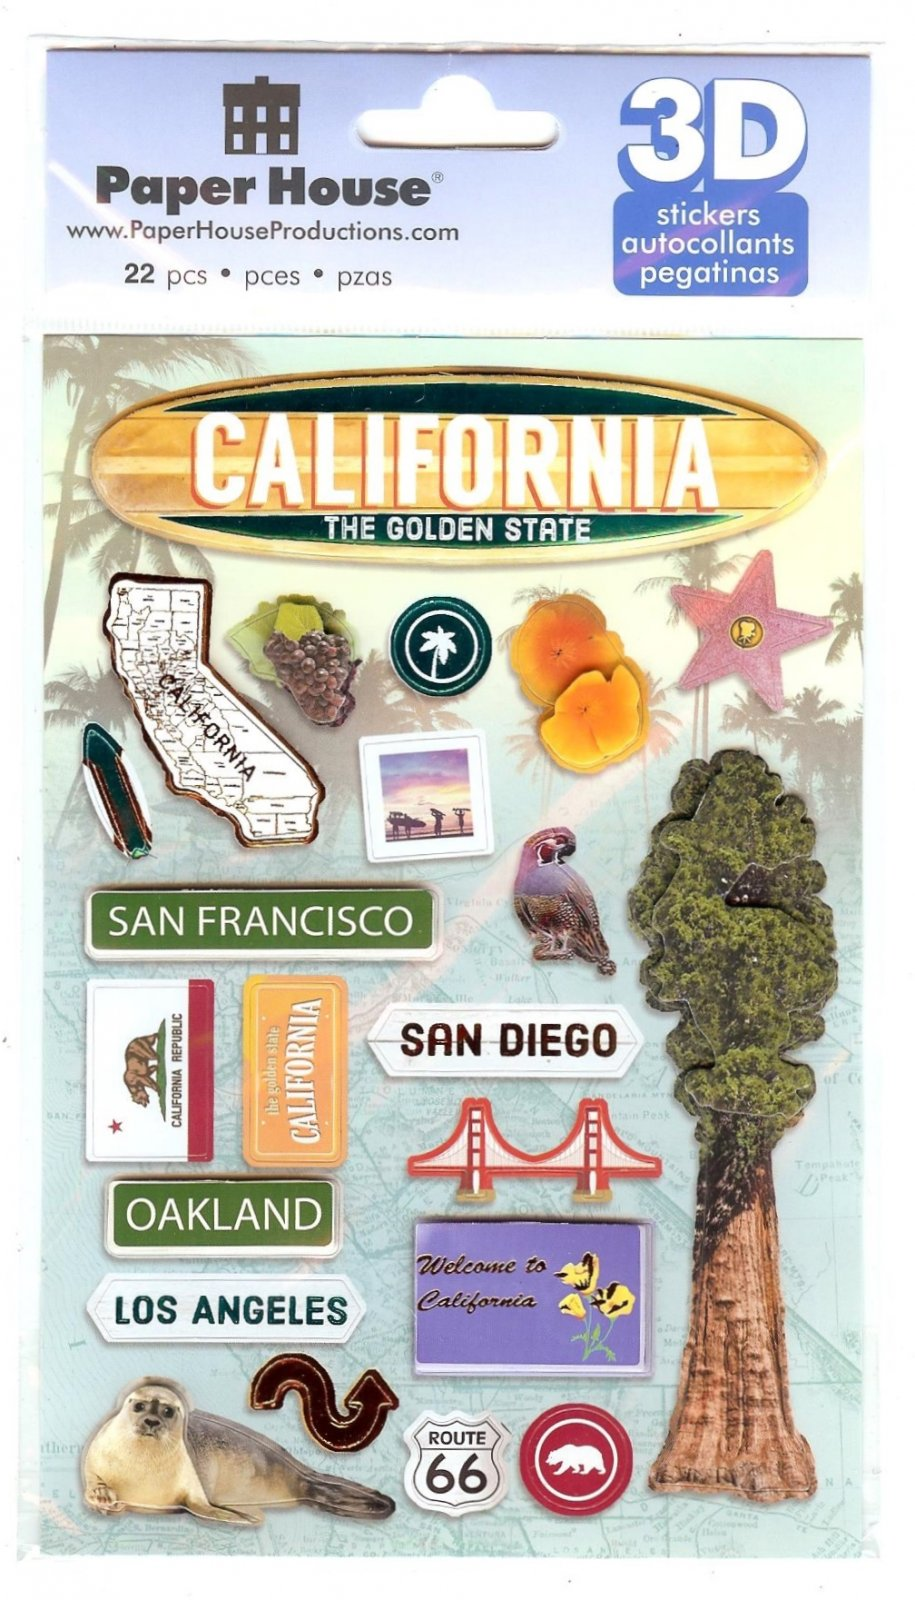 California - Paper House 3D Stickers